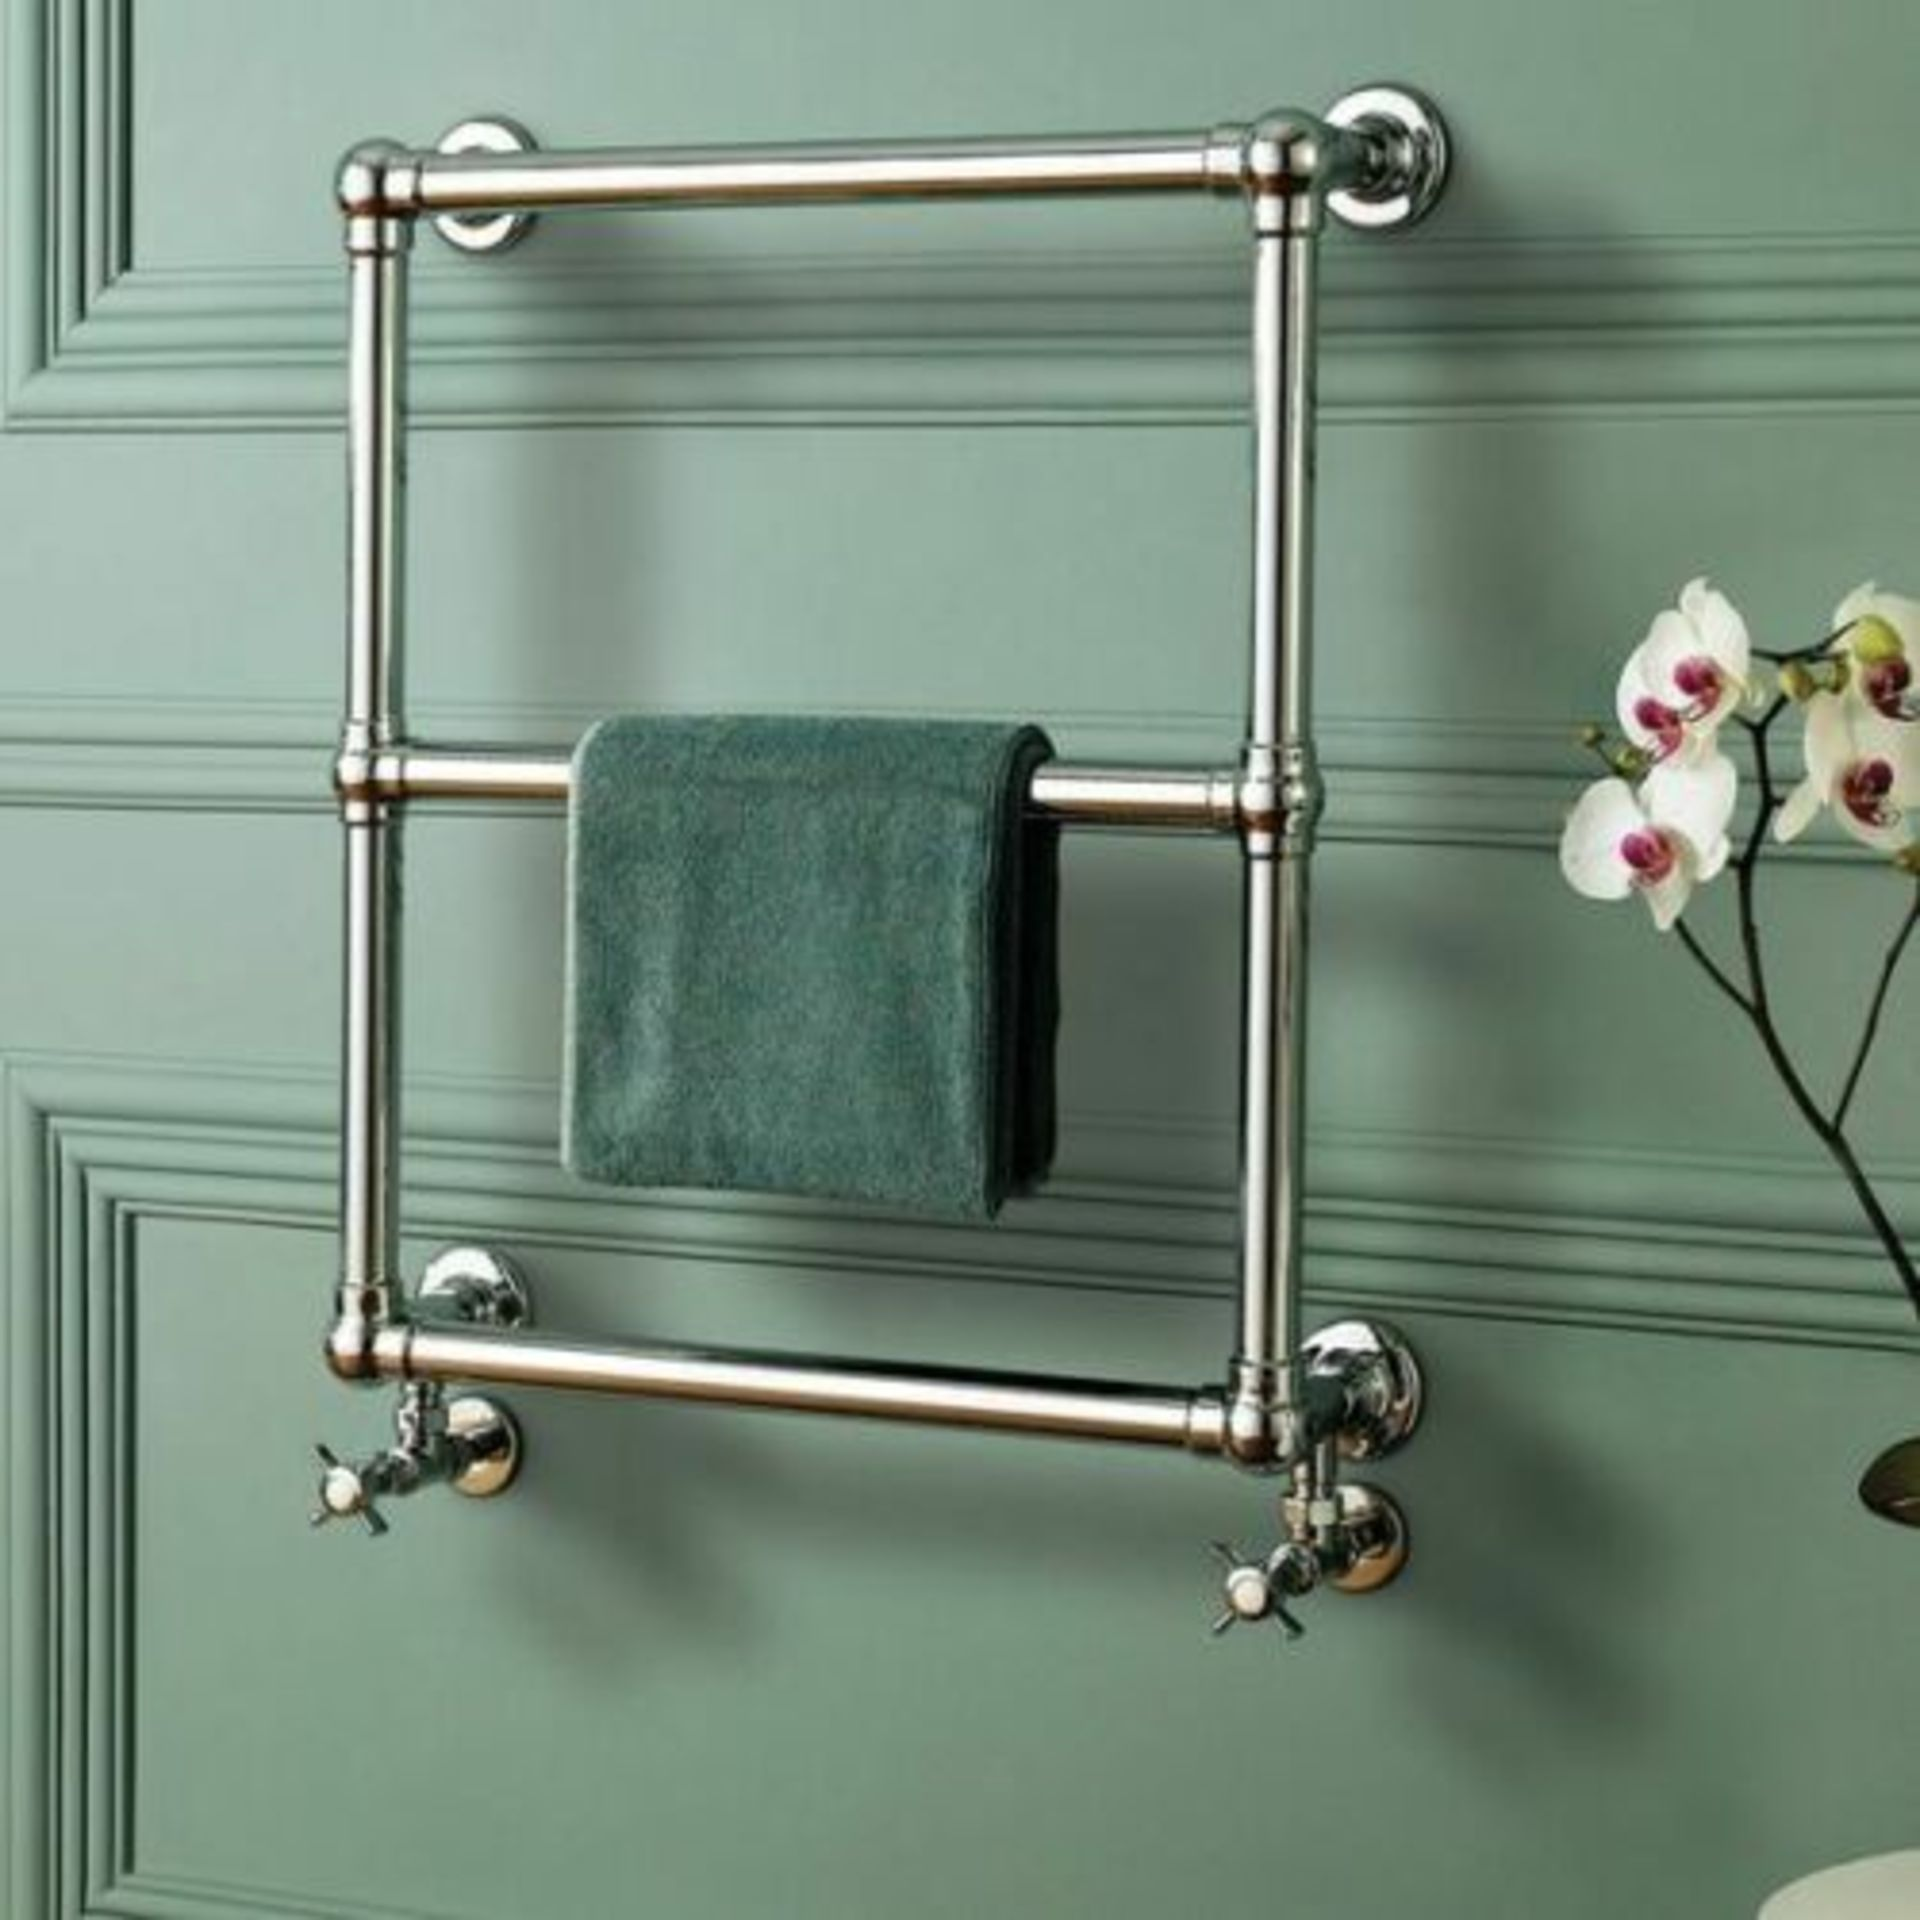 Lot 16 - Fervent Traditional Ball Jointed Towel Radiator 686mm x 600mm Brand new, factory sealed packaging.